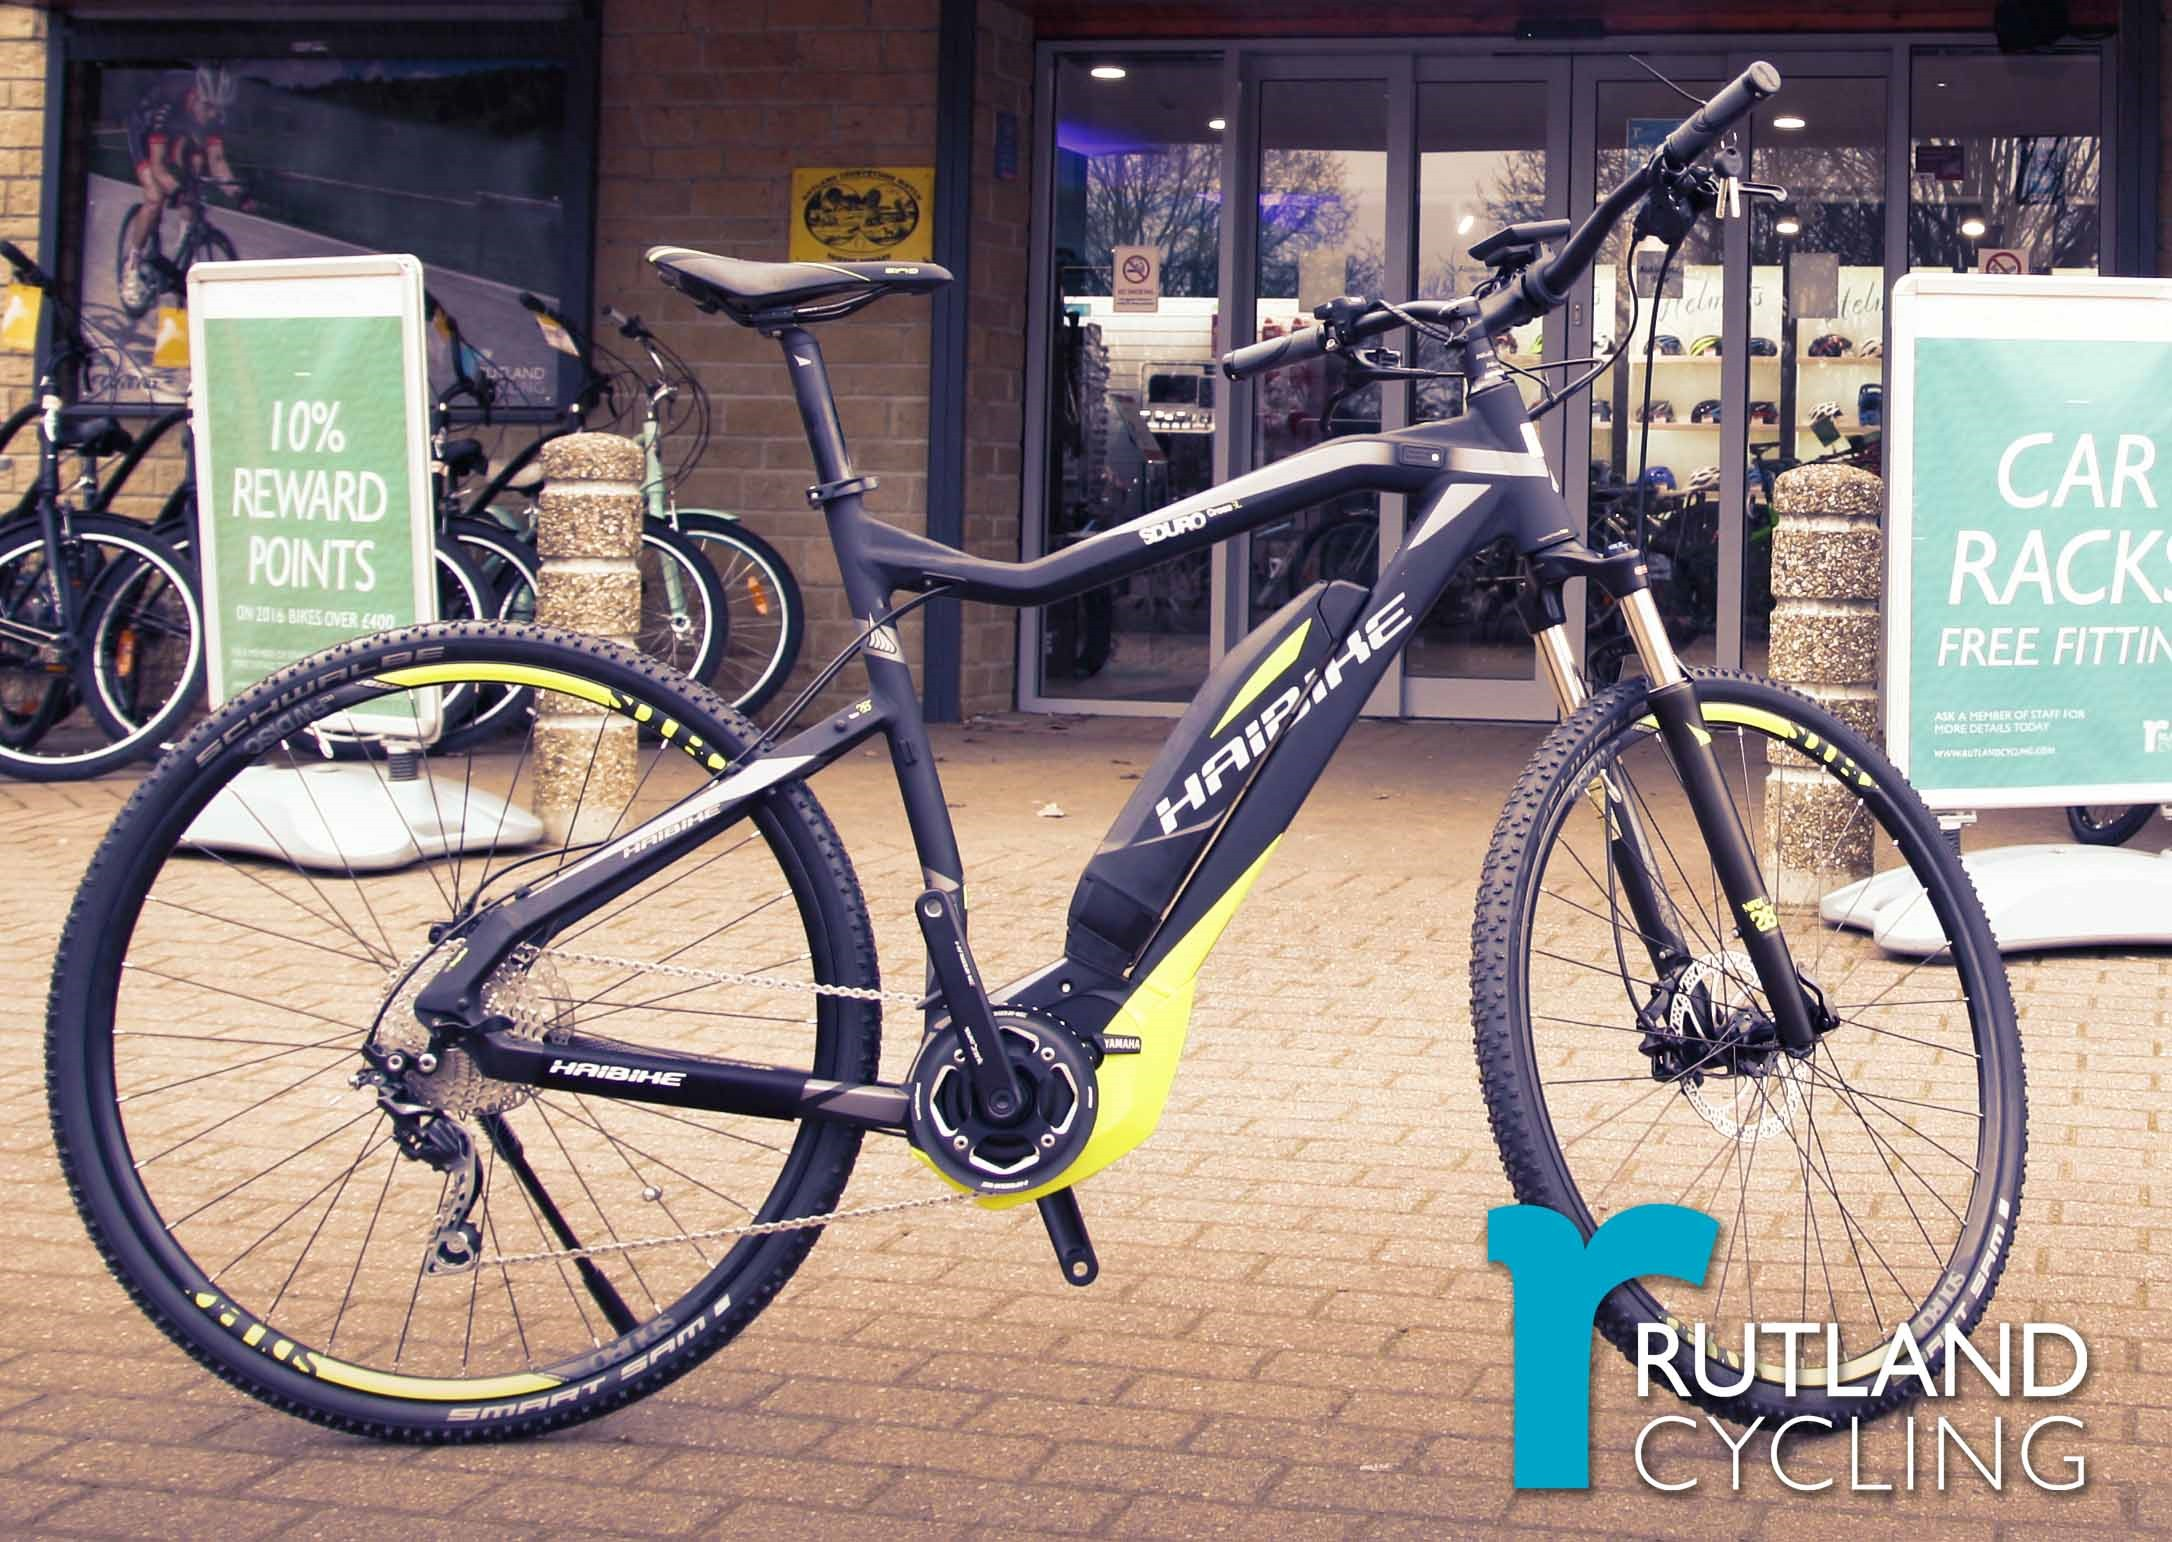 Haibike E-bikes at Rutland Cycling Whitwell